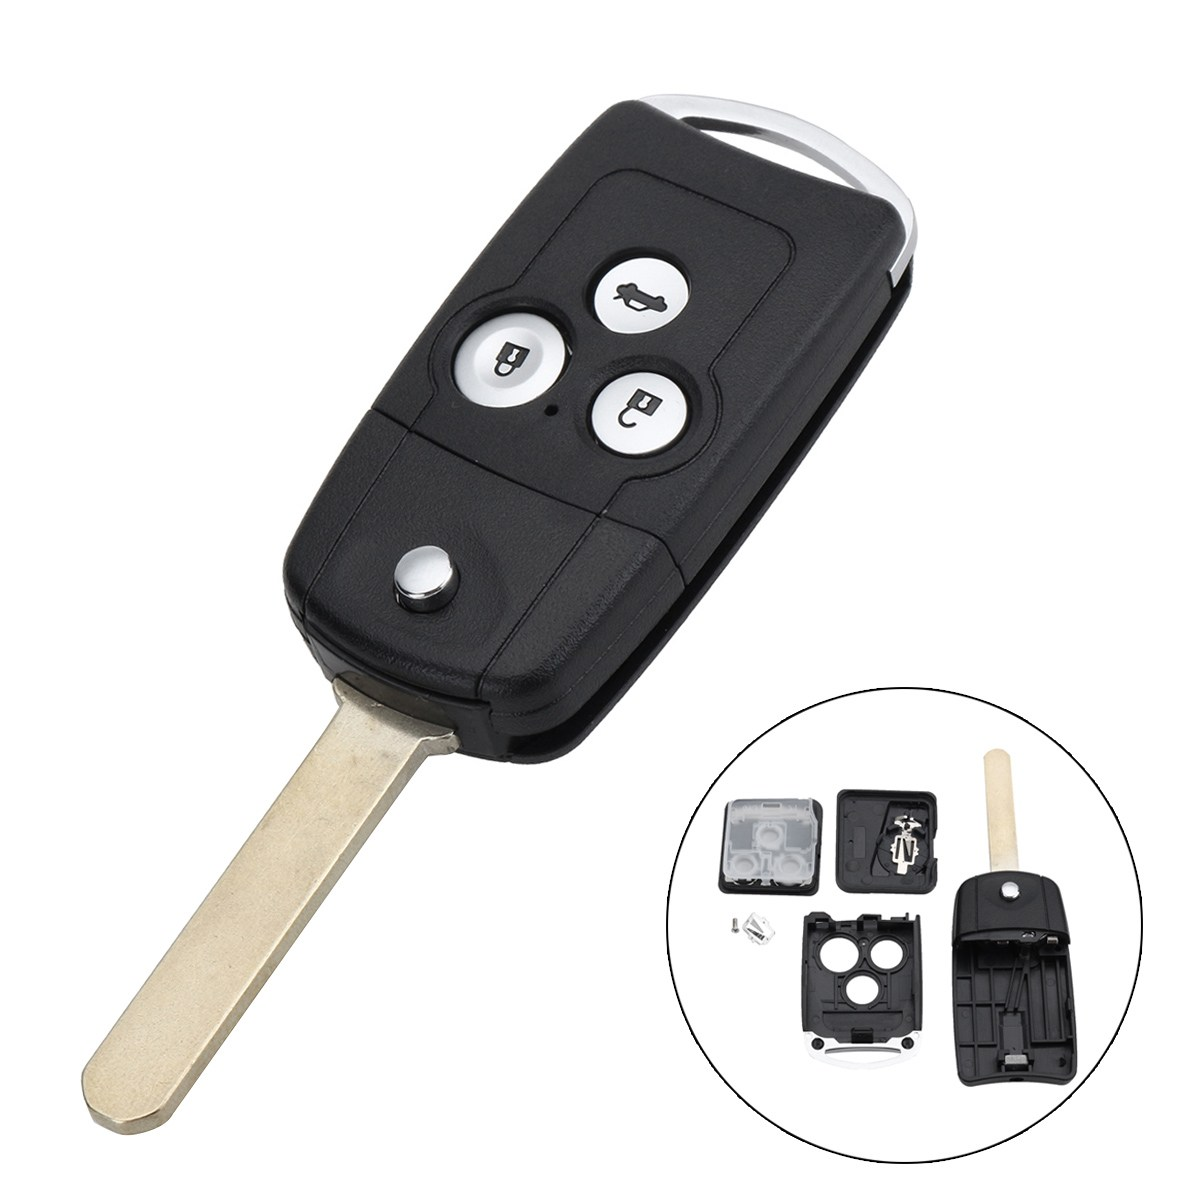 3 Buttons Car Remote Flip Key Fob Case Shell Upgrade For Honda For Civic For Accord Jazz CRV(China)